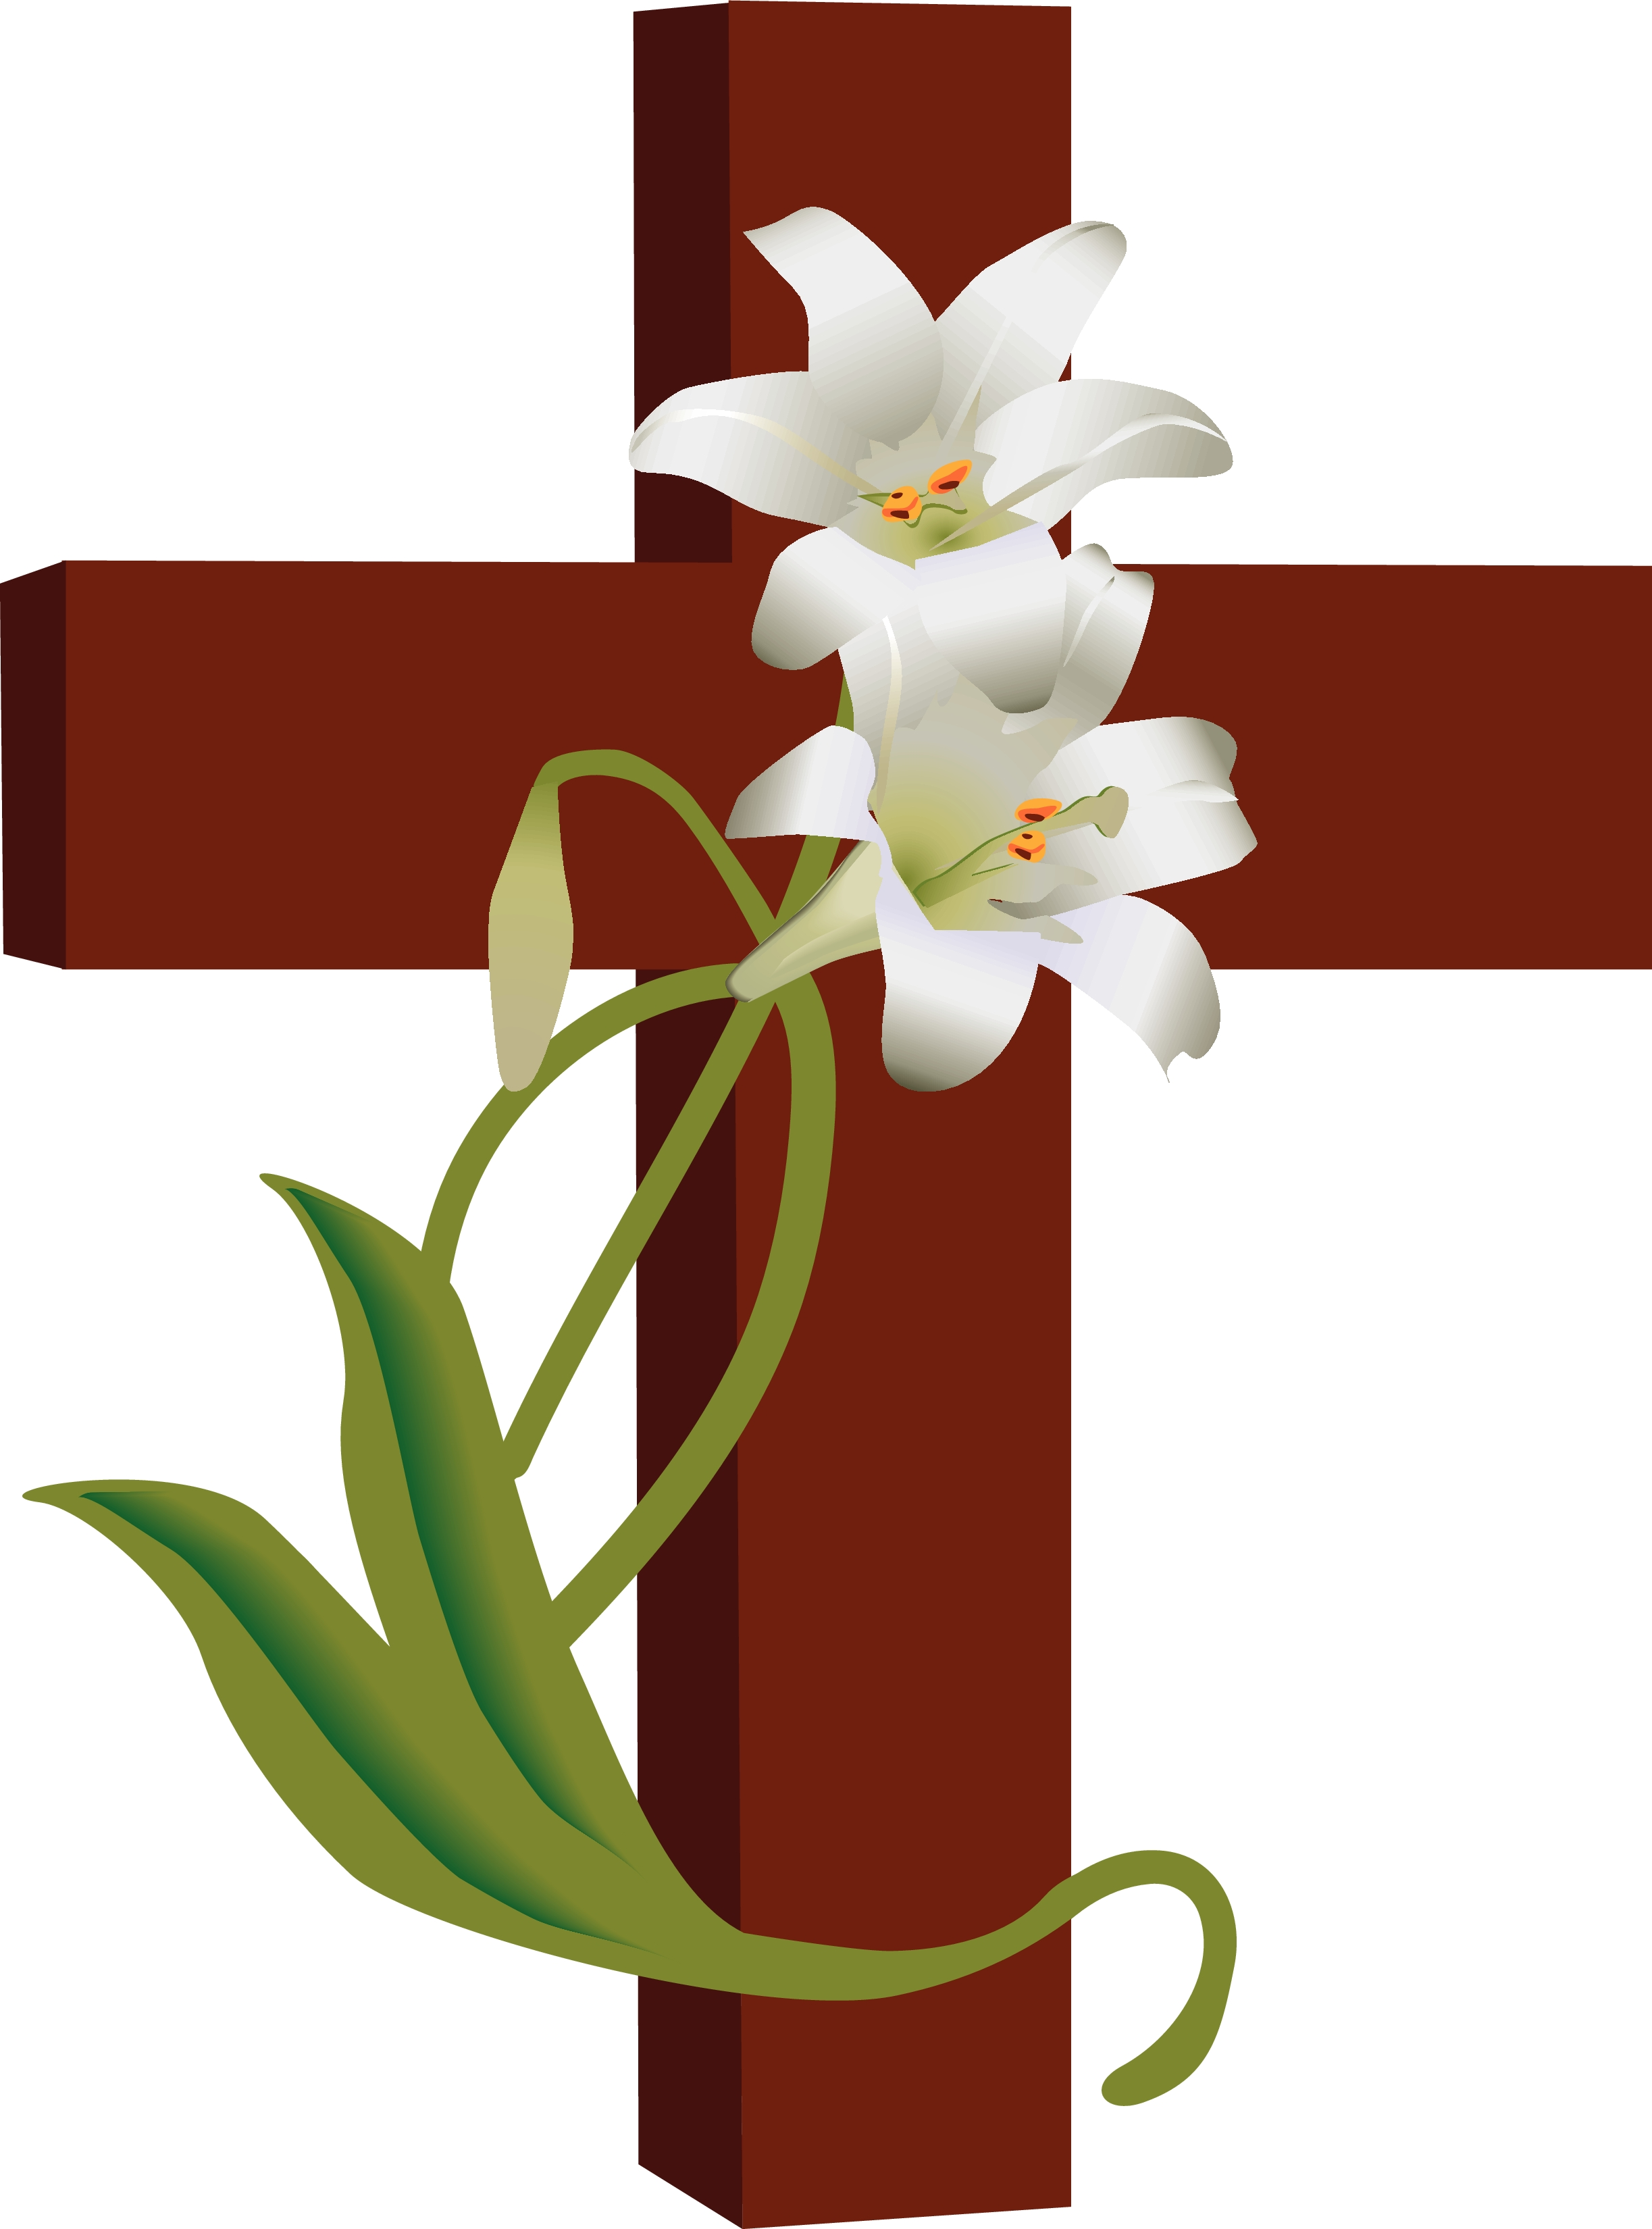 Clip Art Funeral Clipart christian funeral clipart kid jesus cross clip art panda free images